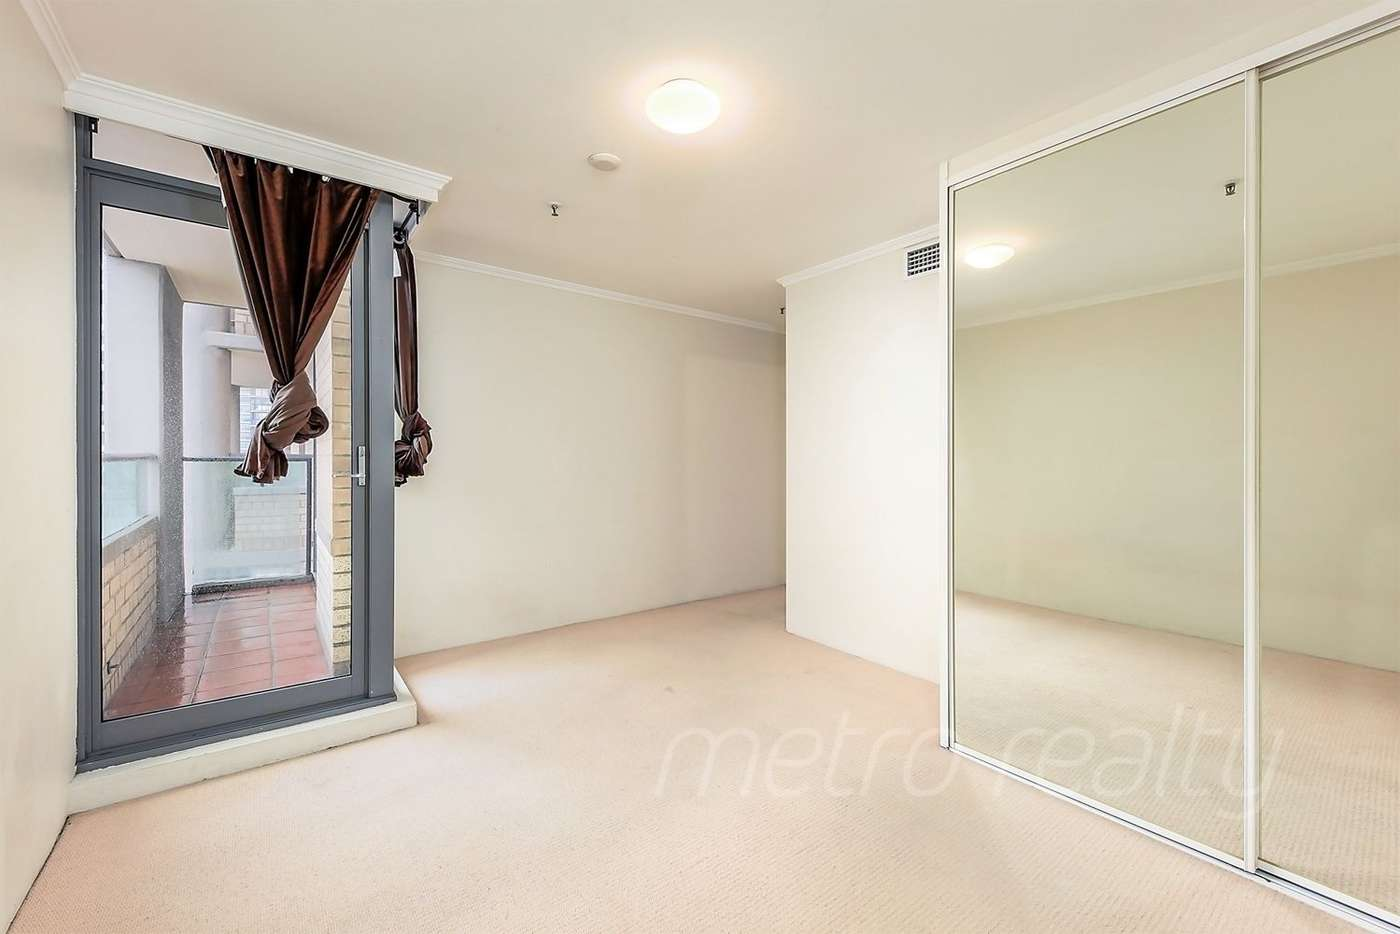 Sixth view of Homely apartment listing, 2503/148 Elizabeth Street, Sydney NSW 2000